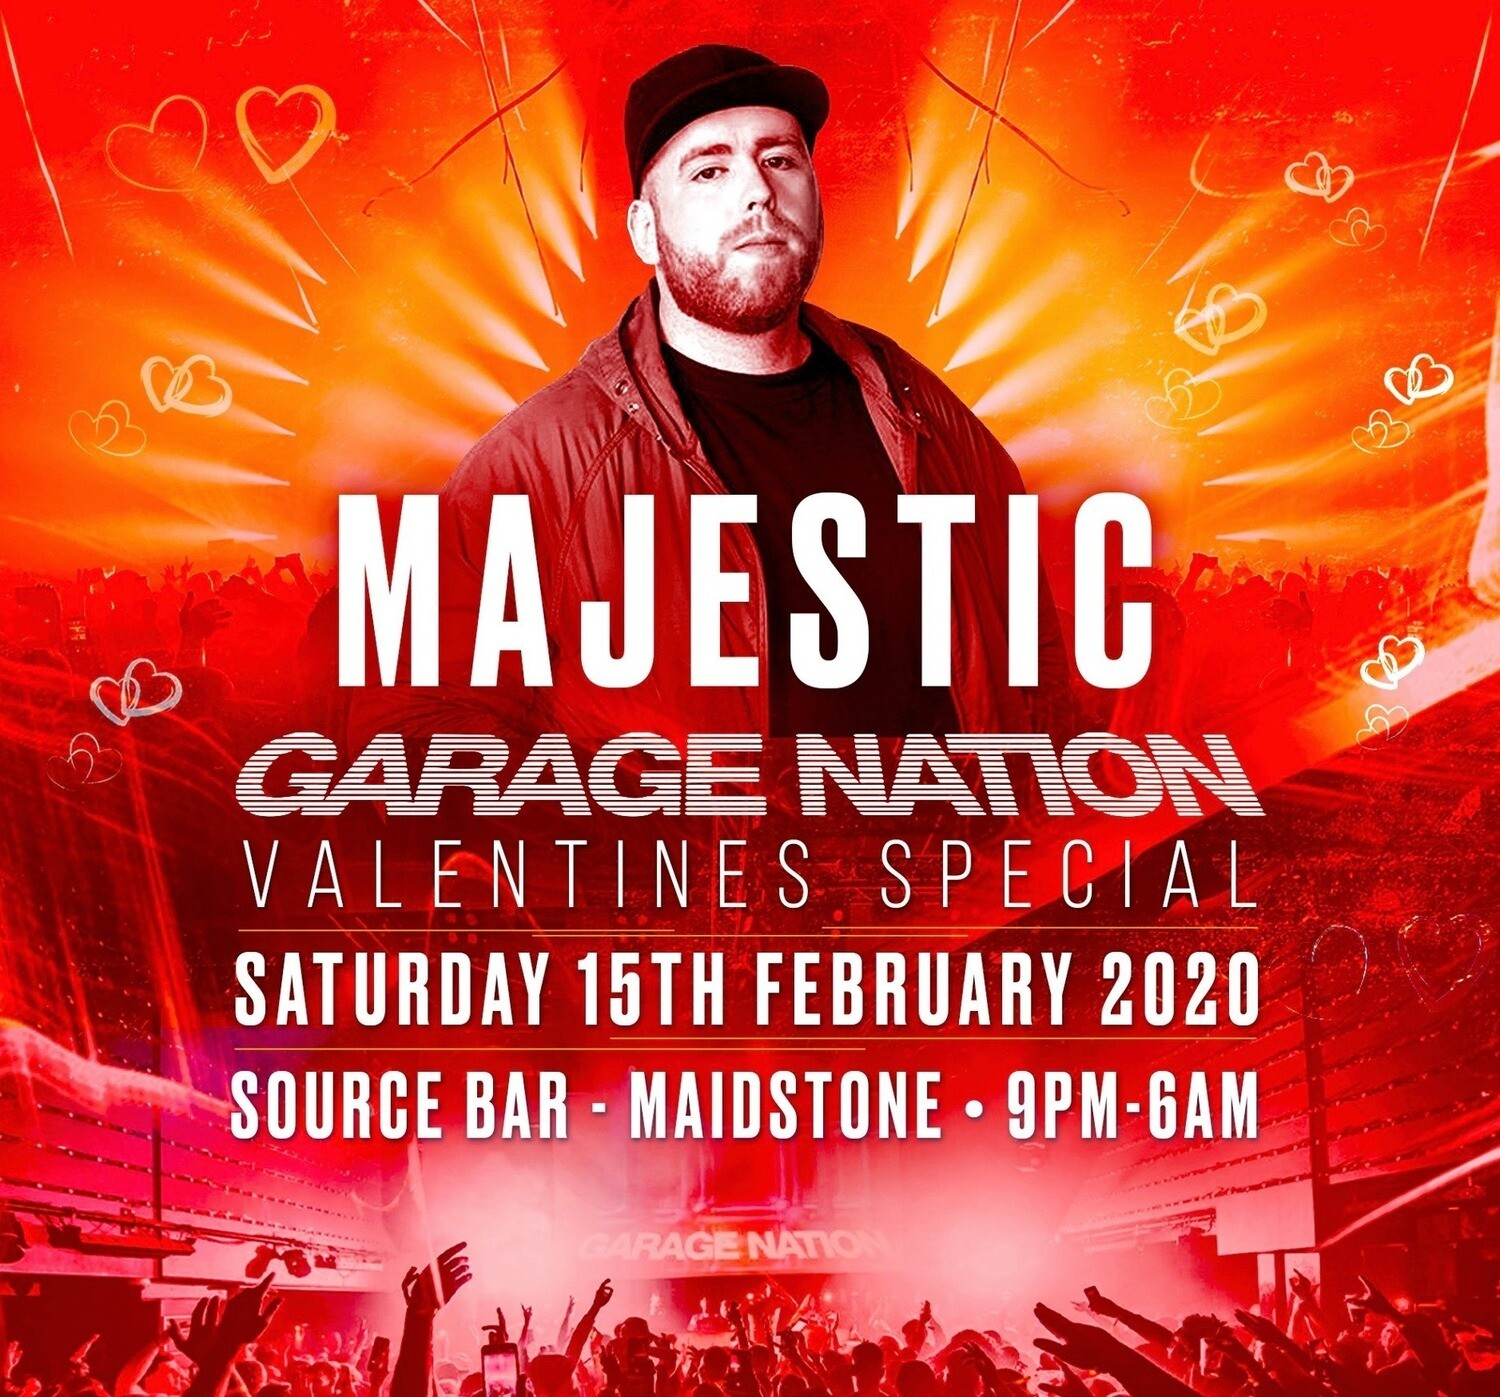 Saturday 15th February 2020 - Garage Nation Valentines Special